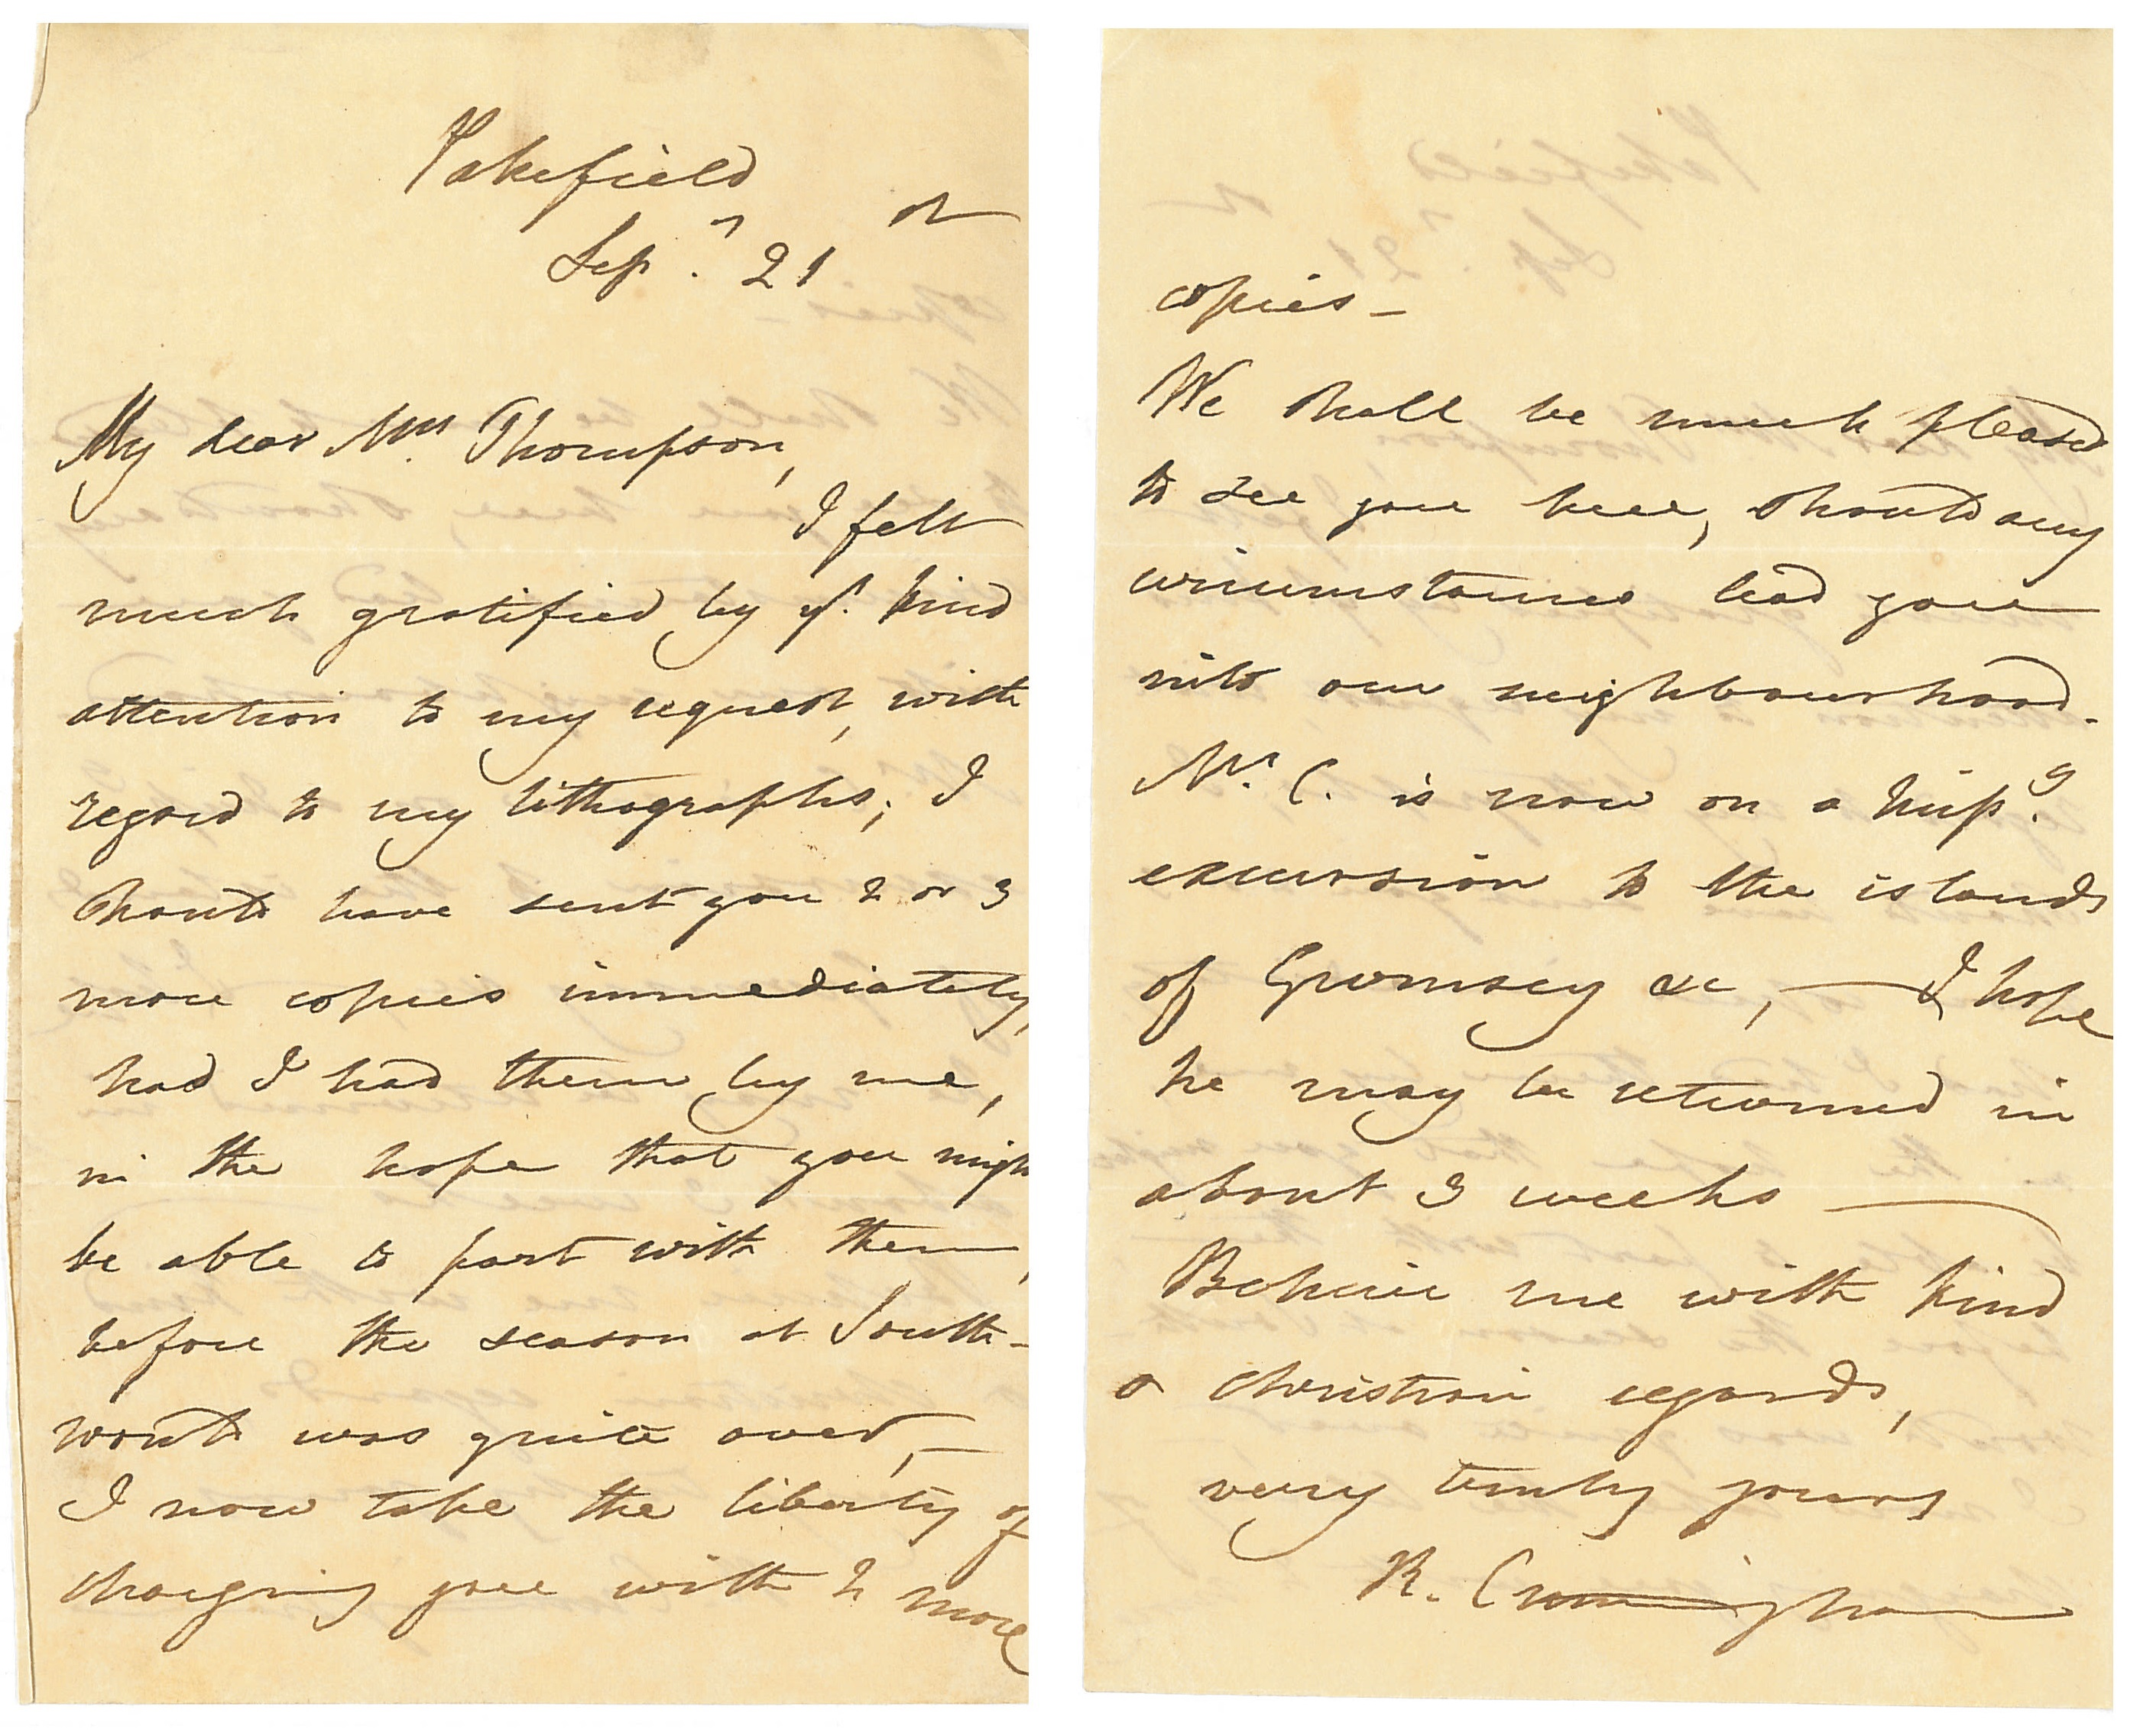 Letter from Richenda Cunningham to Ms. Thompson. Dated September 21, 18--. Betty Boyd Library & Research Center, National Museum of Women in the Arts.